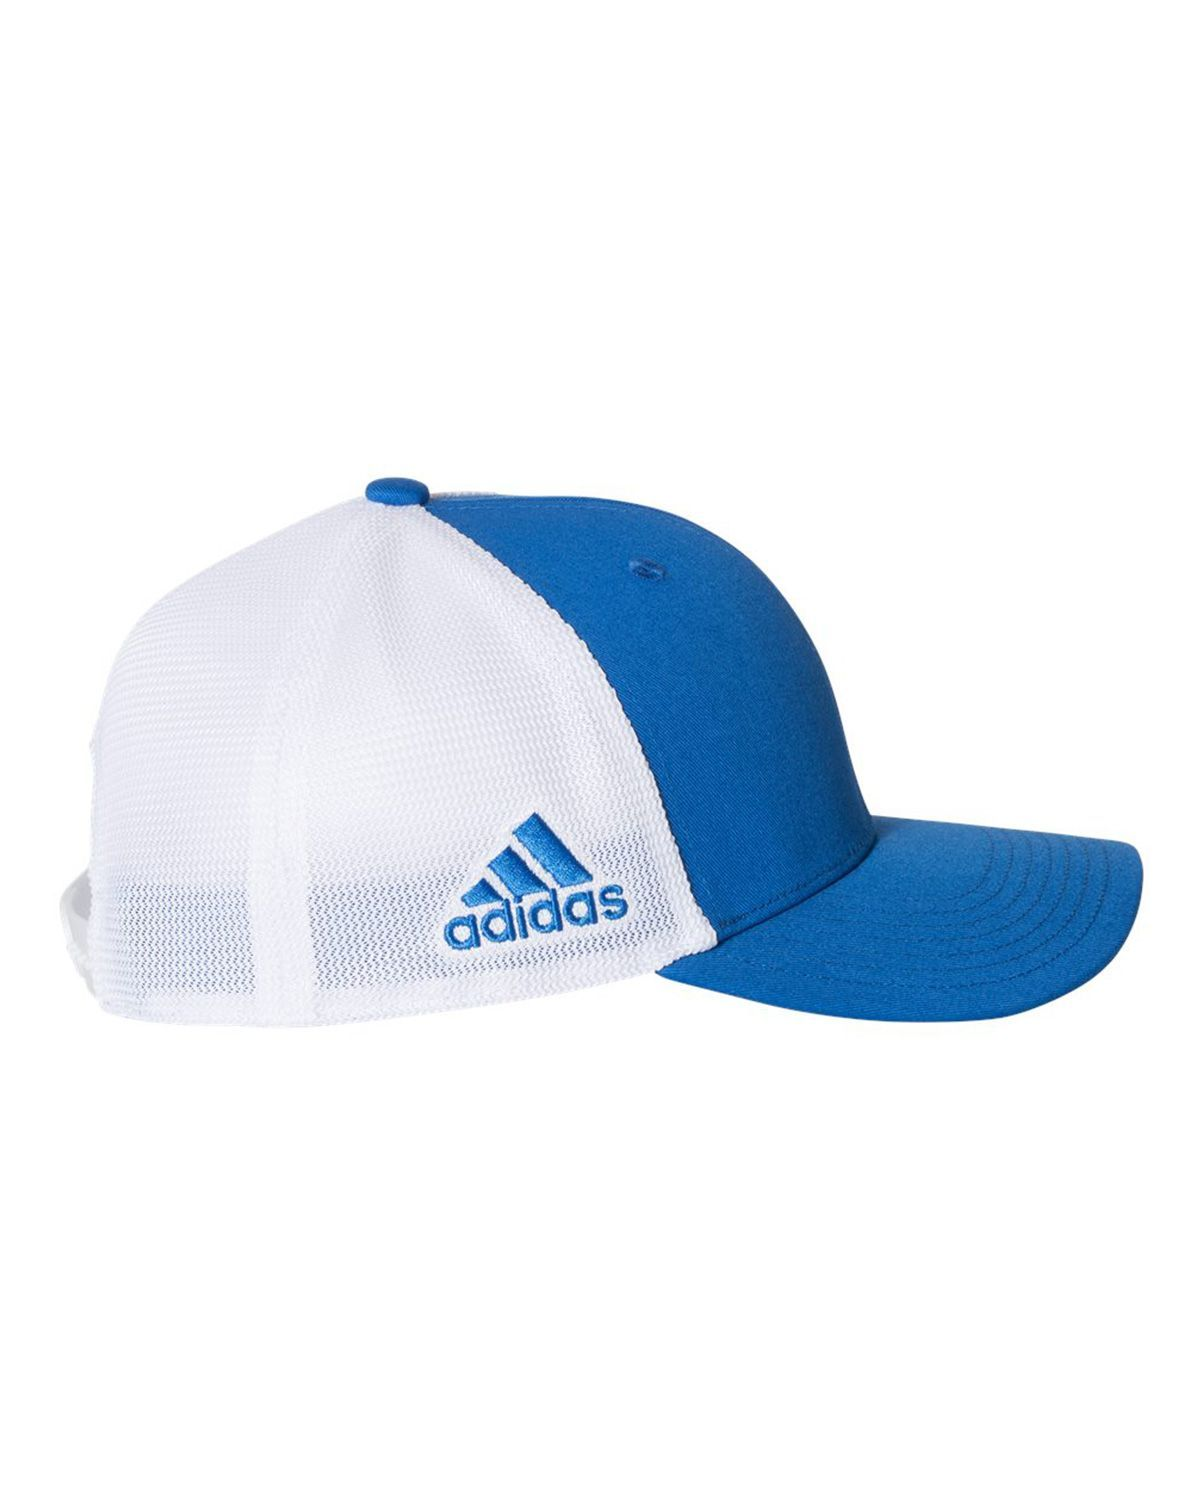 Logo Embroidered Adidas Golf A627 Mesh Colorblock Cap 762cdf290d69